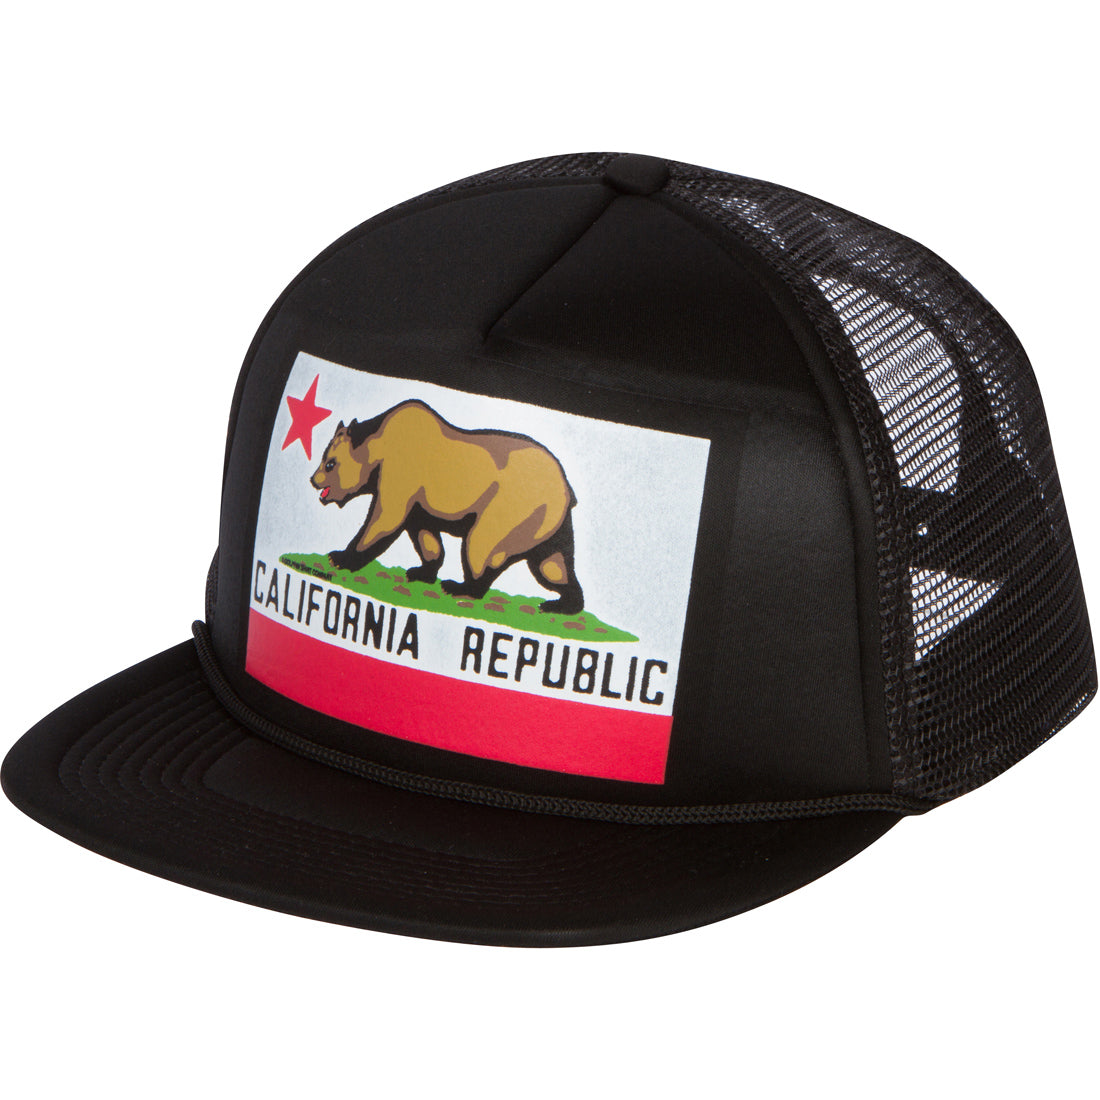 California Republic Original State Flag Snapback Hat On Black - Flat Bill